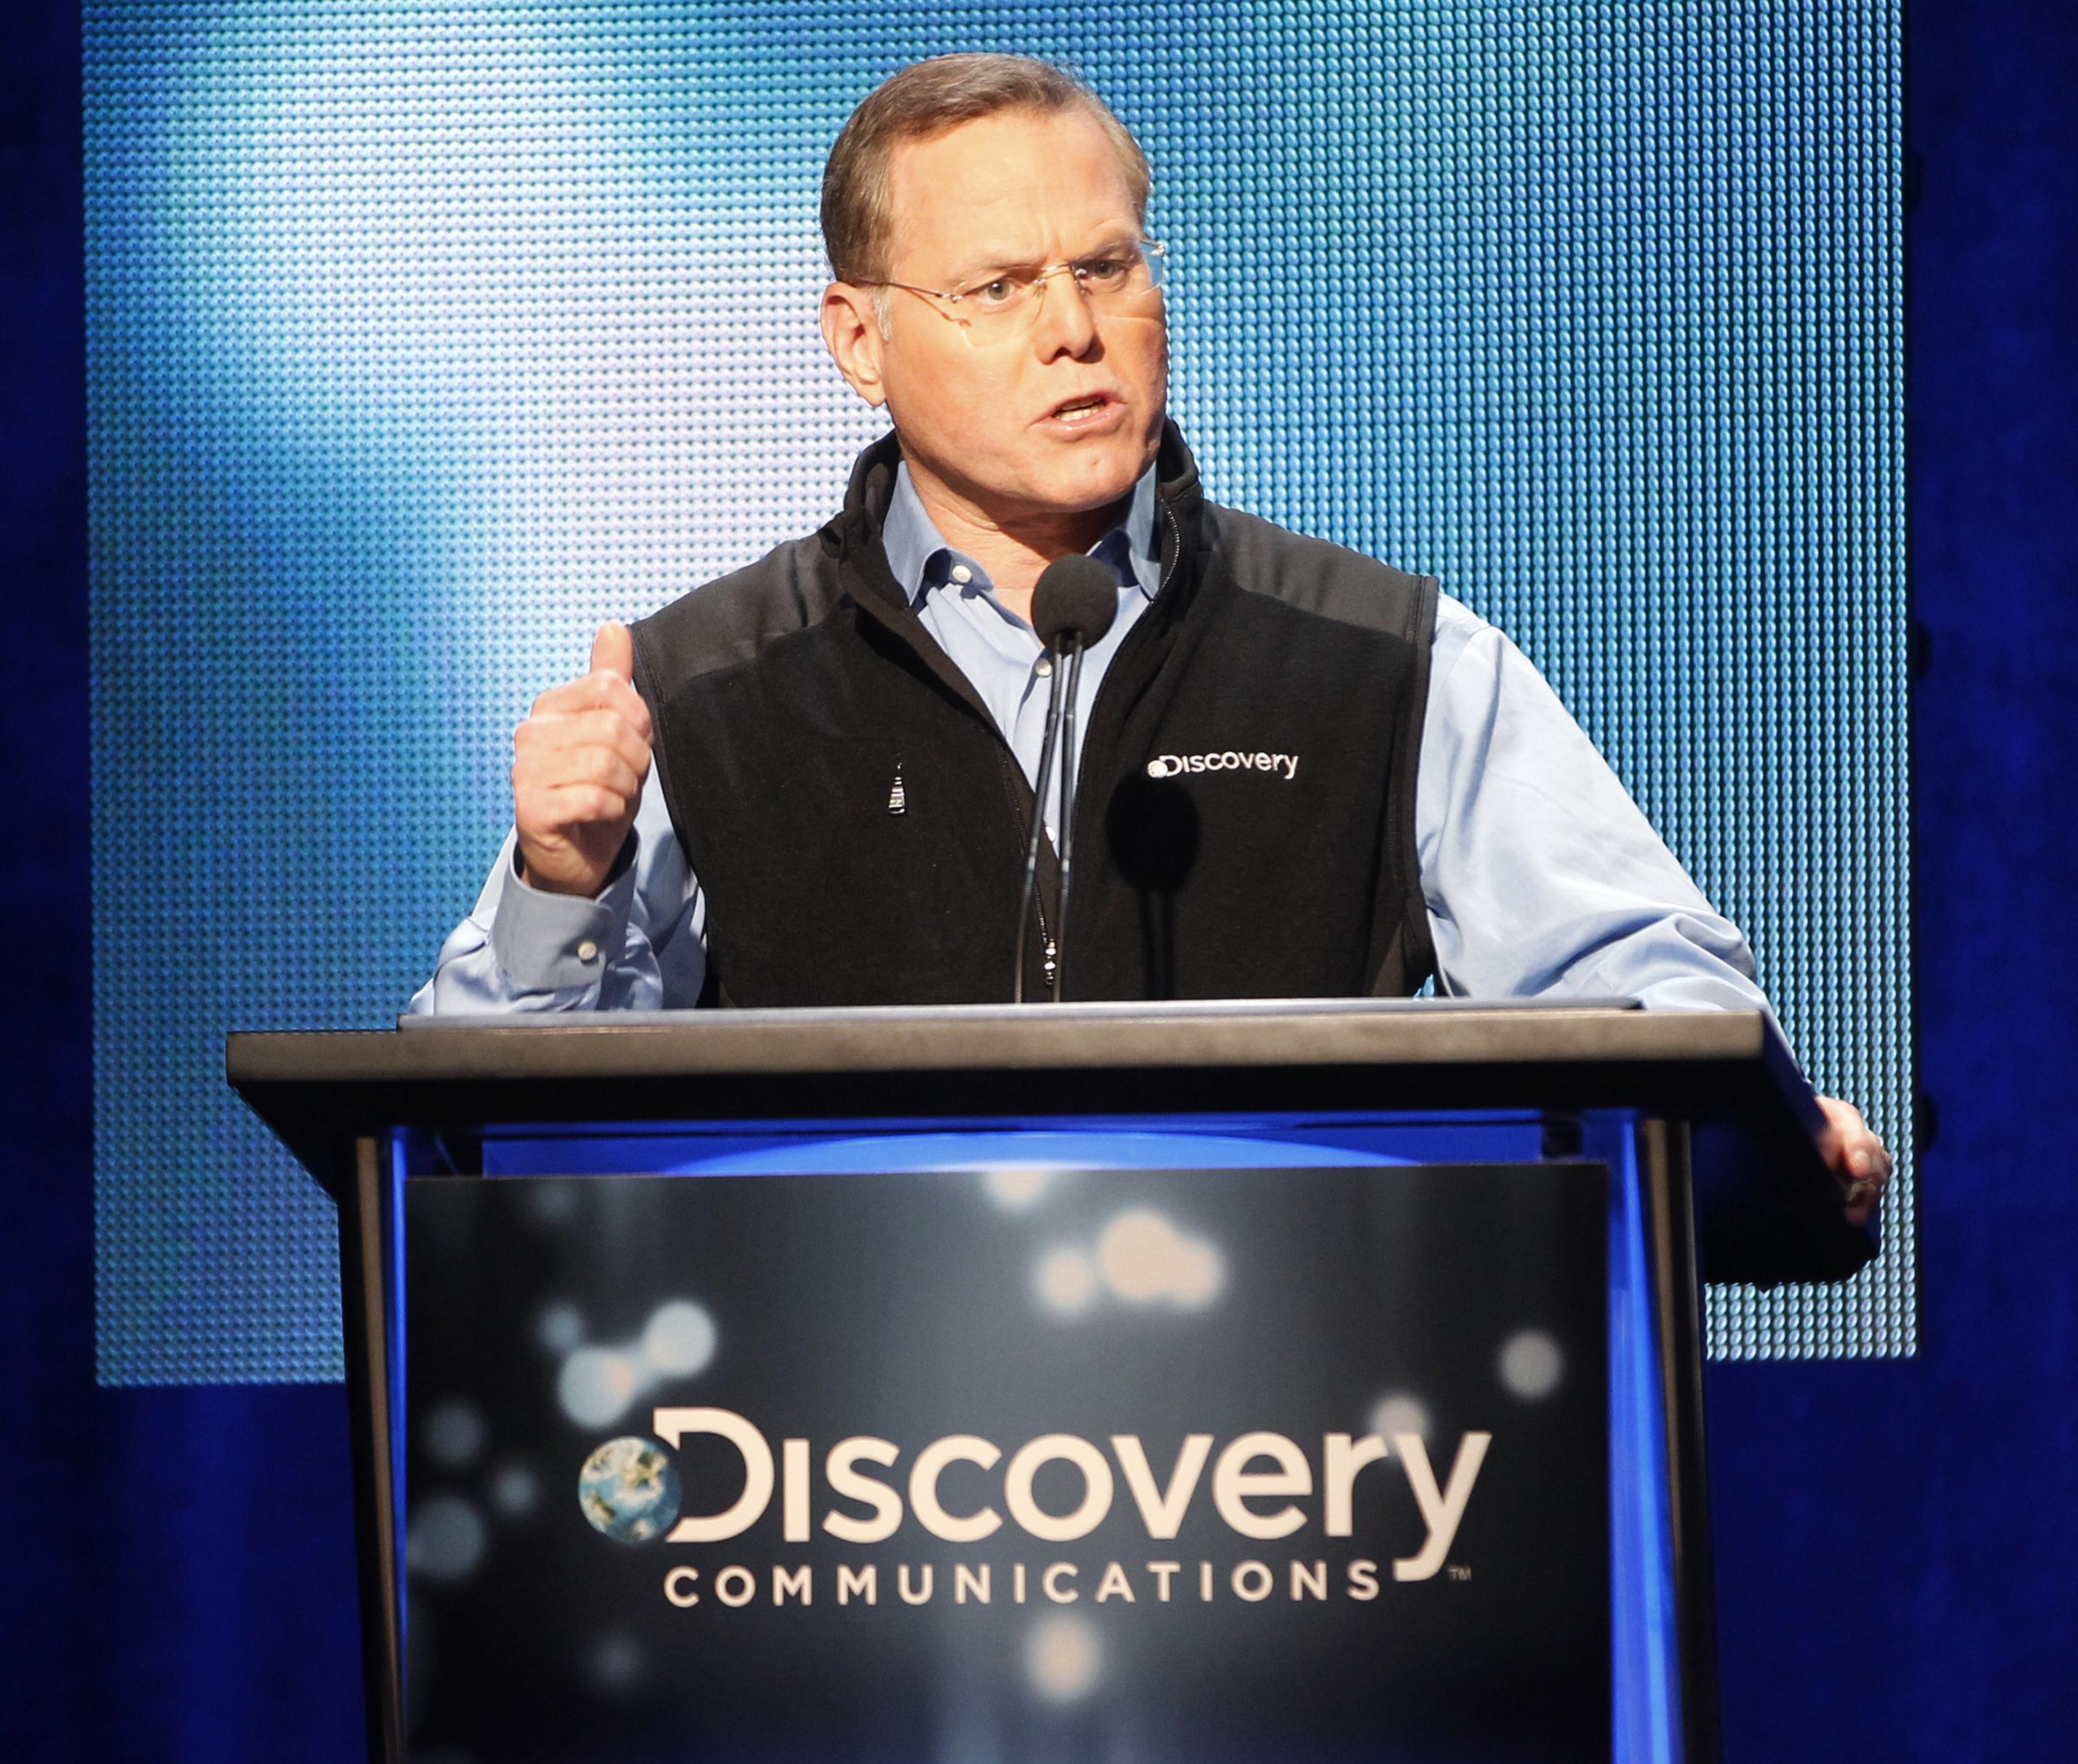 1.Discovery Communications